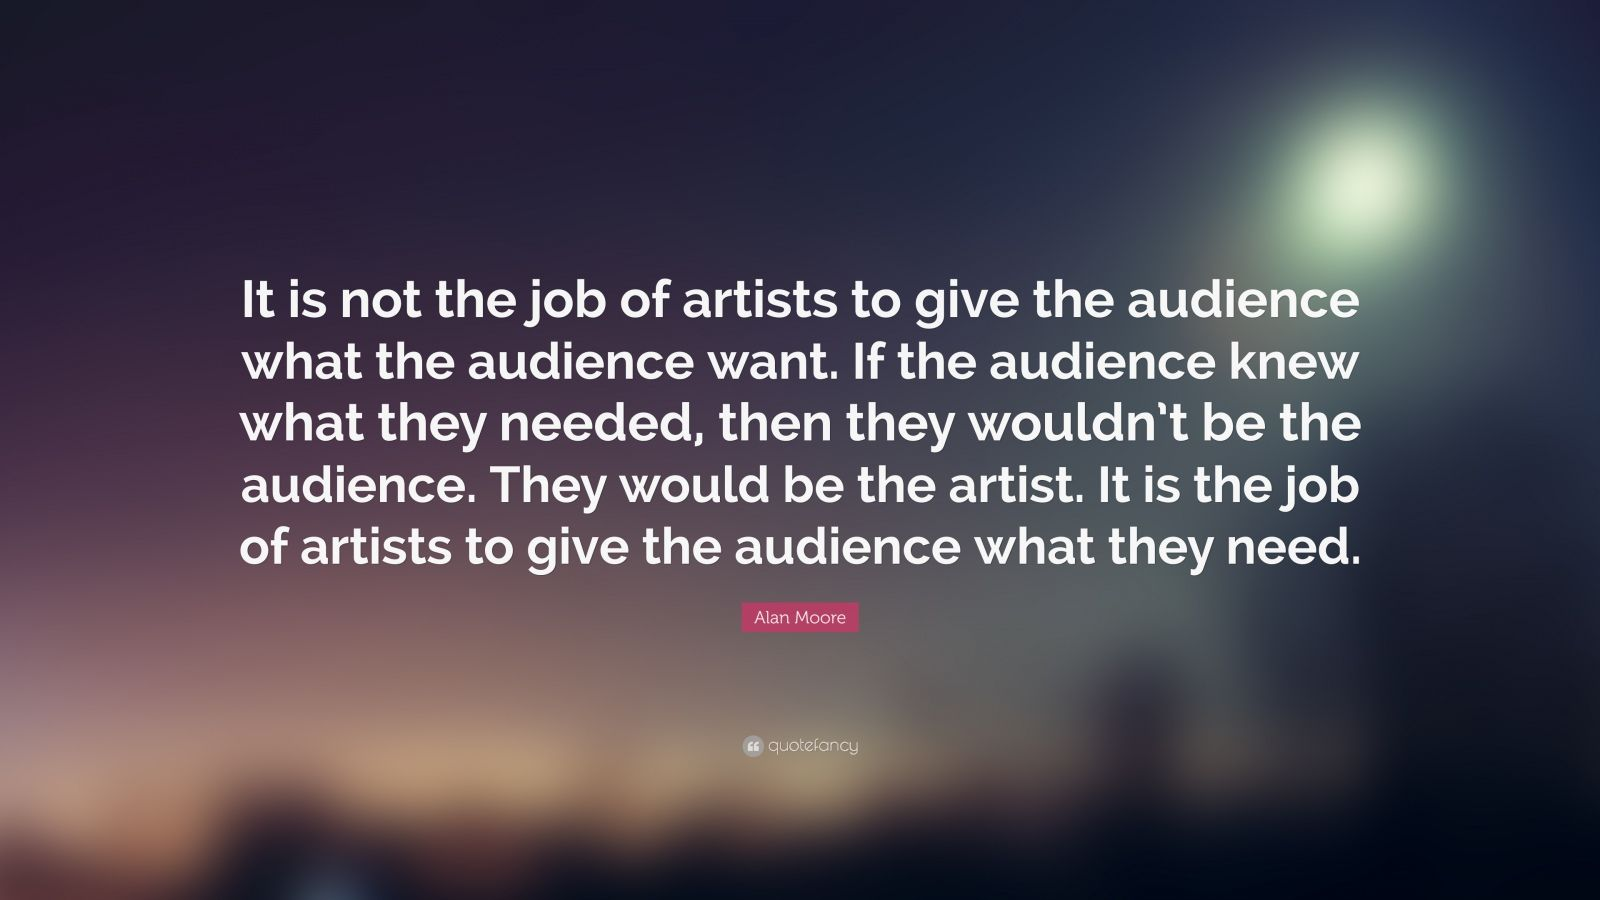 "Alan Moore Quote: ""It is not the job of artists to give the audience what the audience want. If the audience knew what they needed, then they wouldn't be the audience. They would be the artist. It is the job of artists to give the audience what they need."""